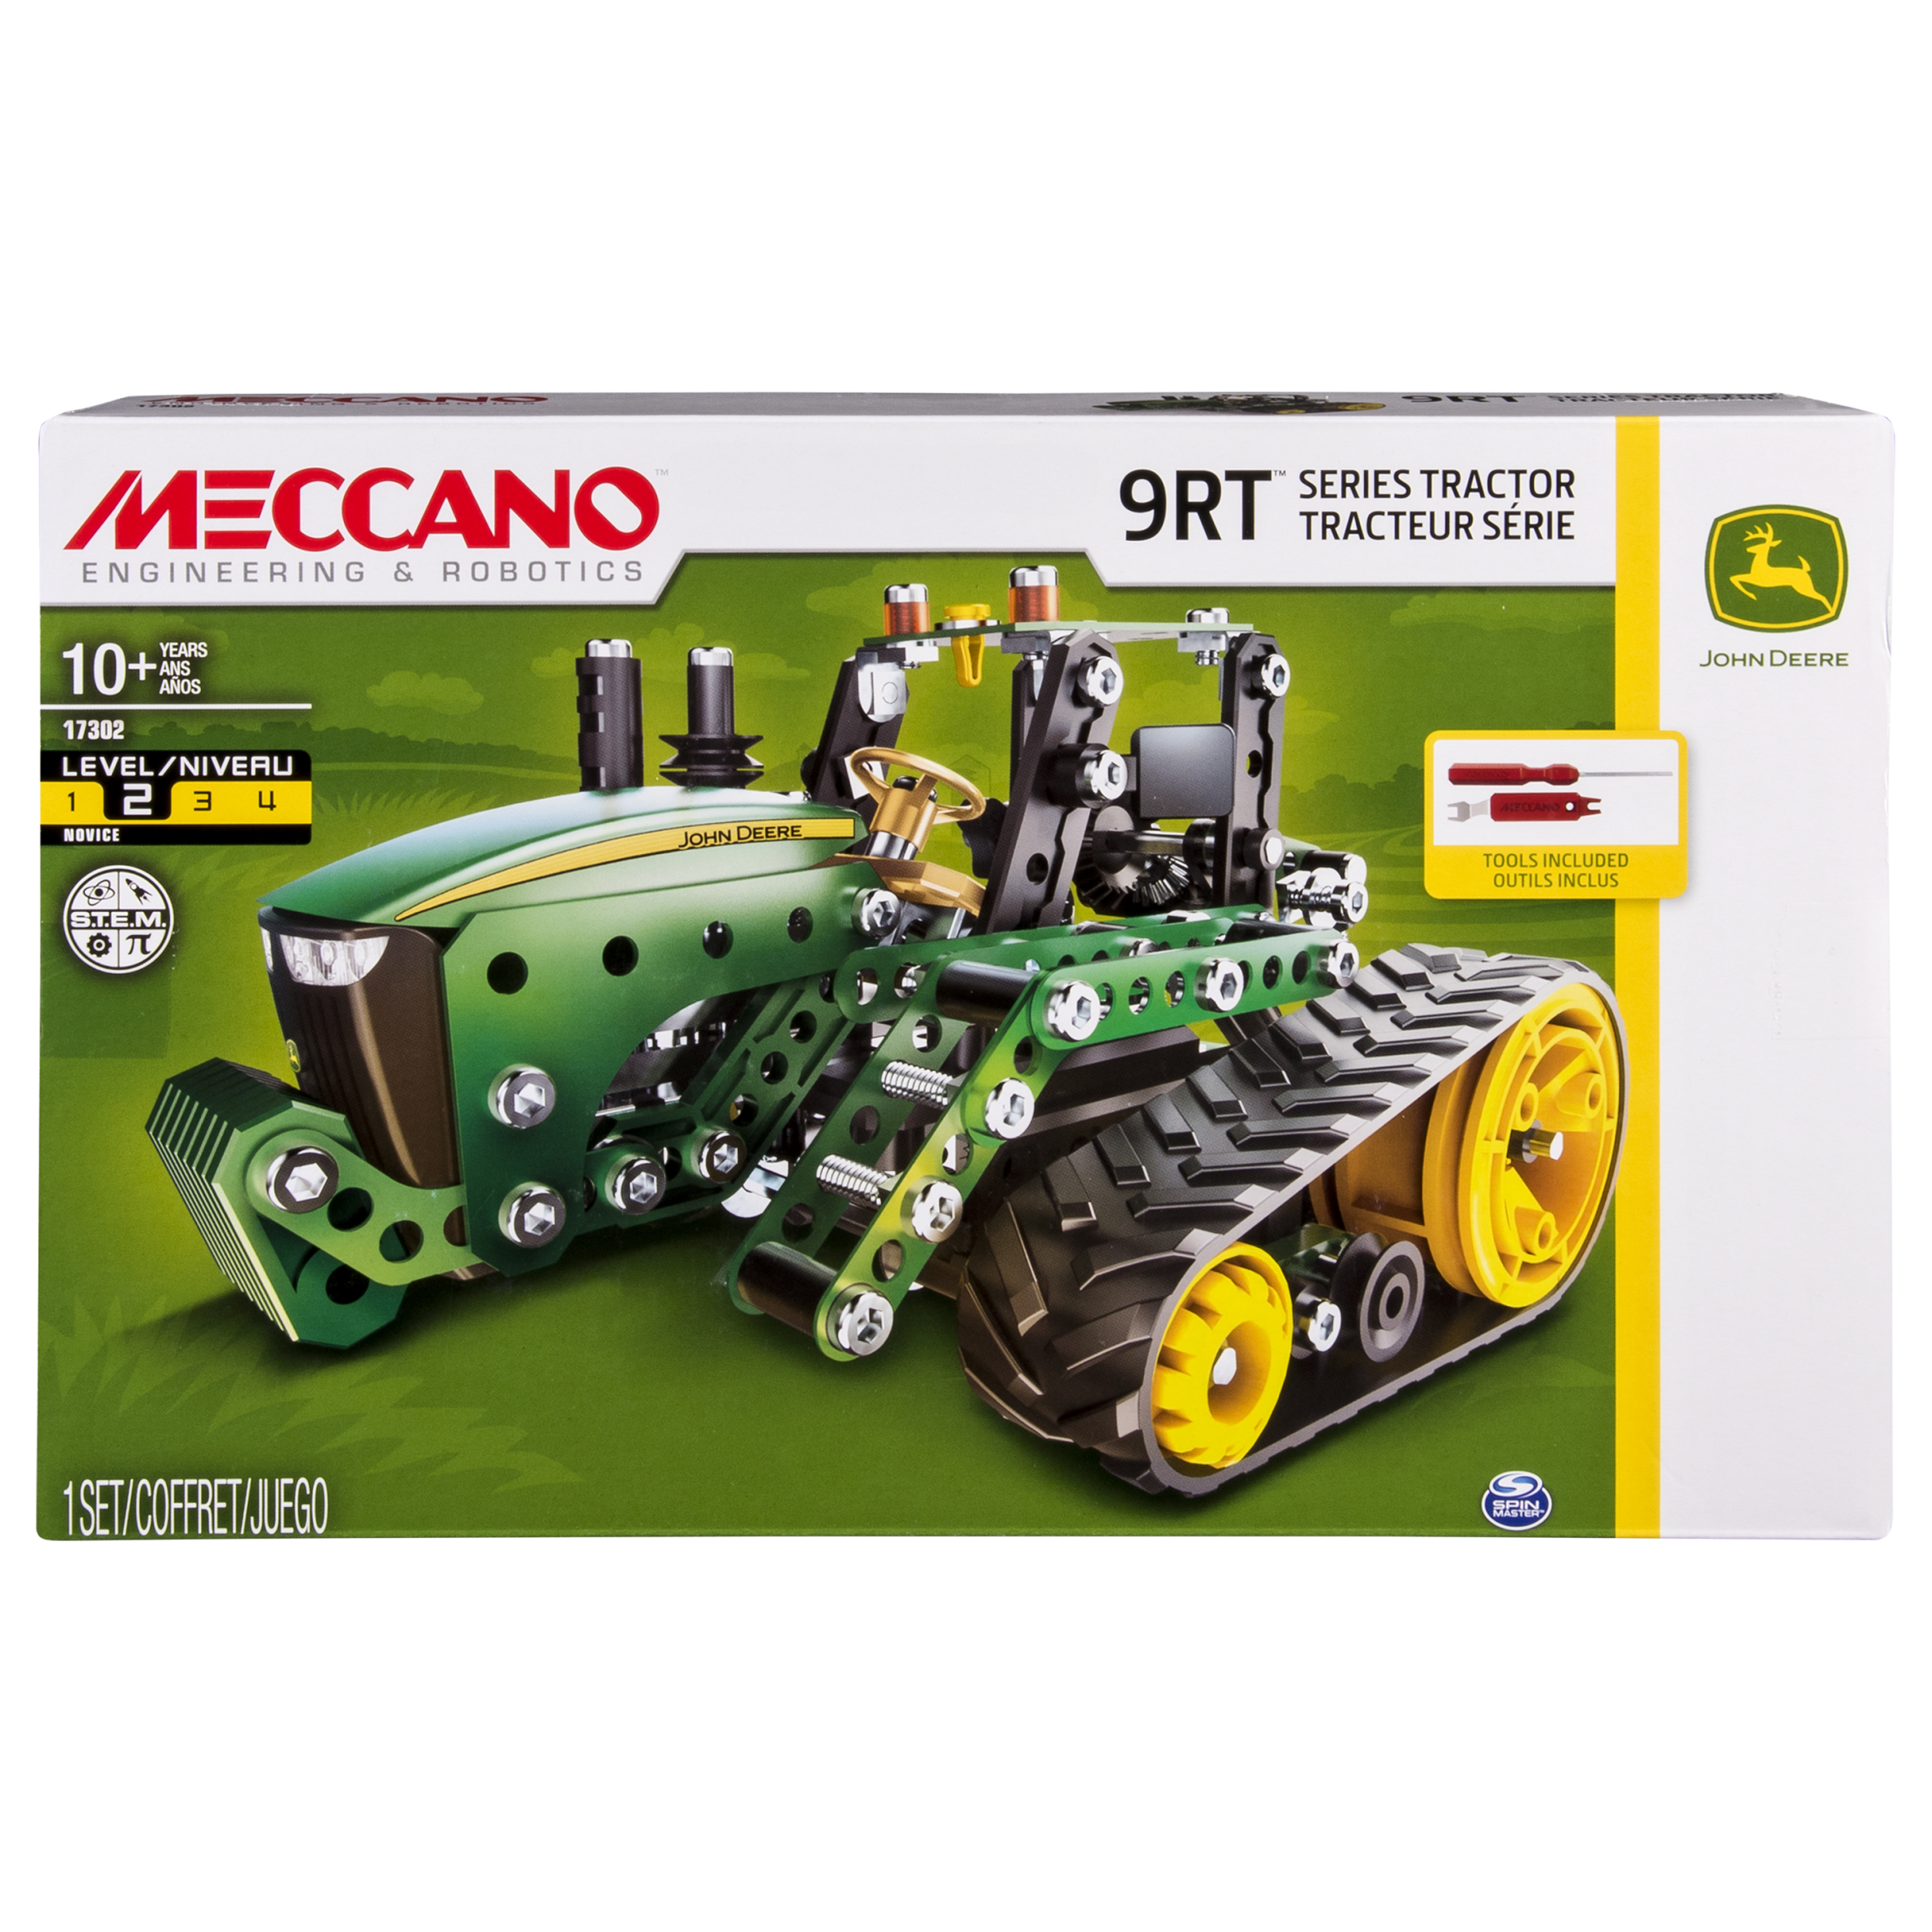 Meccano by Erector, John Deere 9RT Series Tractor Building Set, STEM Engineering Education Toy for Ages 10 and up